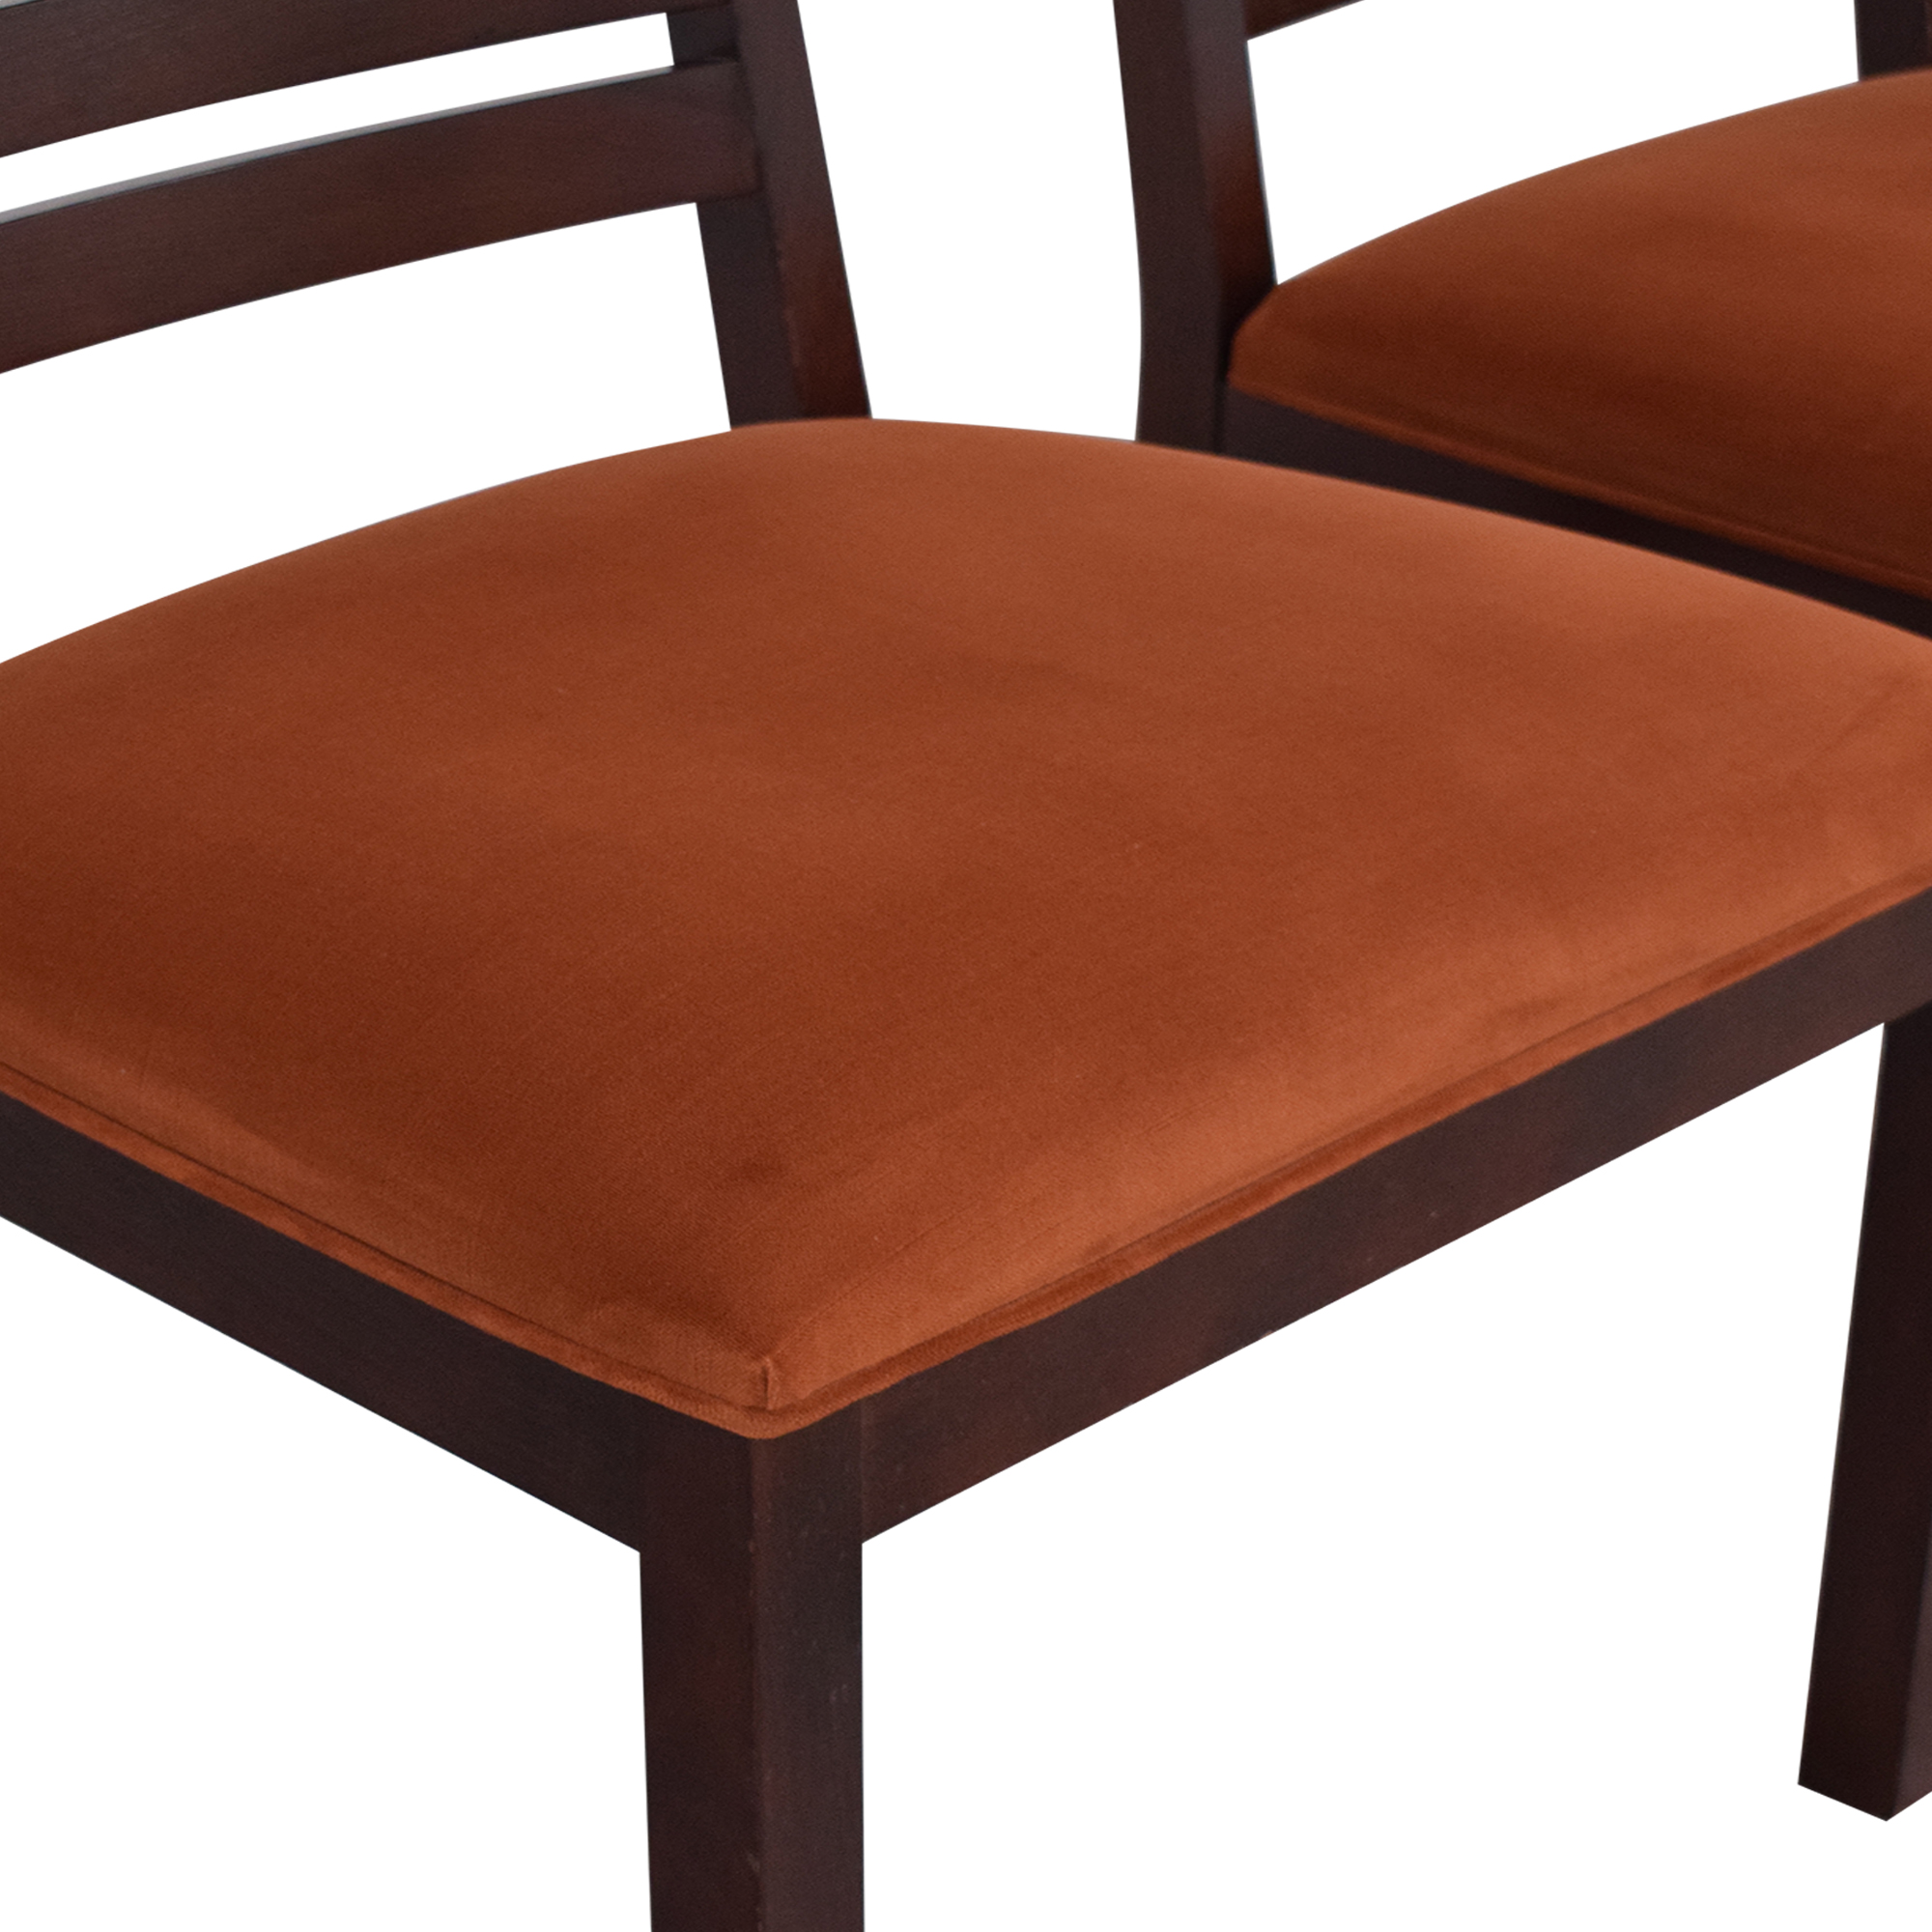 Ethan Allen Ethan Allen Upholstered Dining Chairs